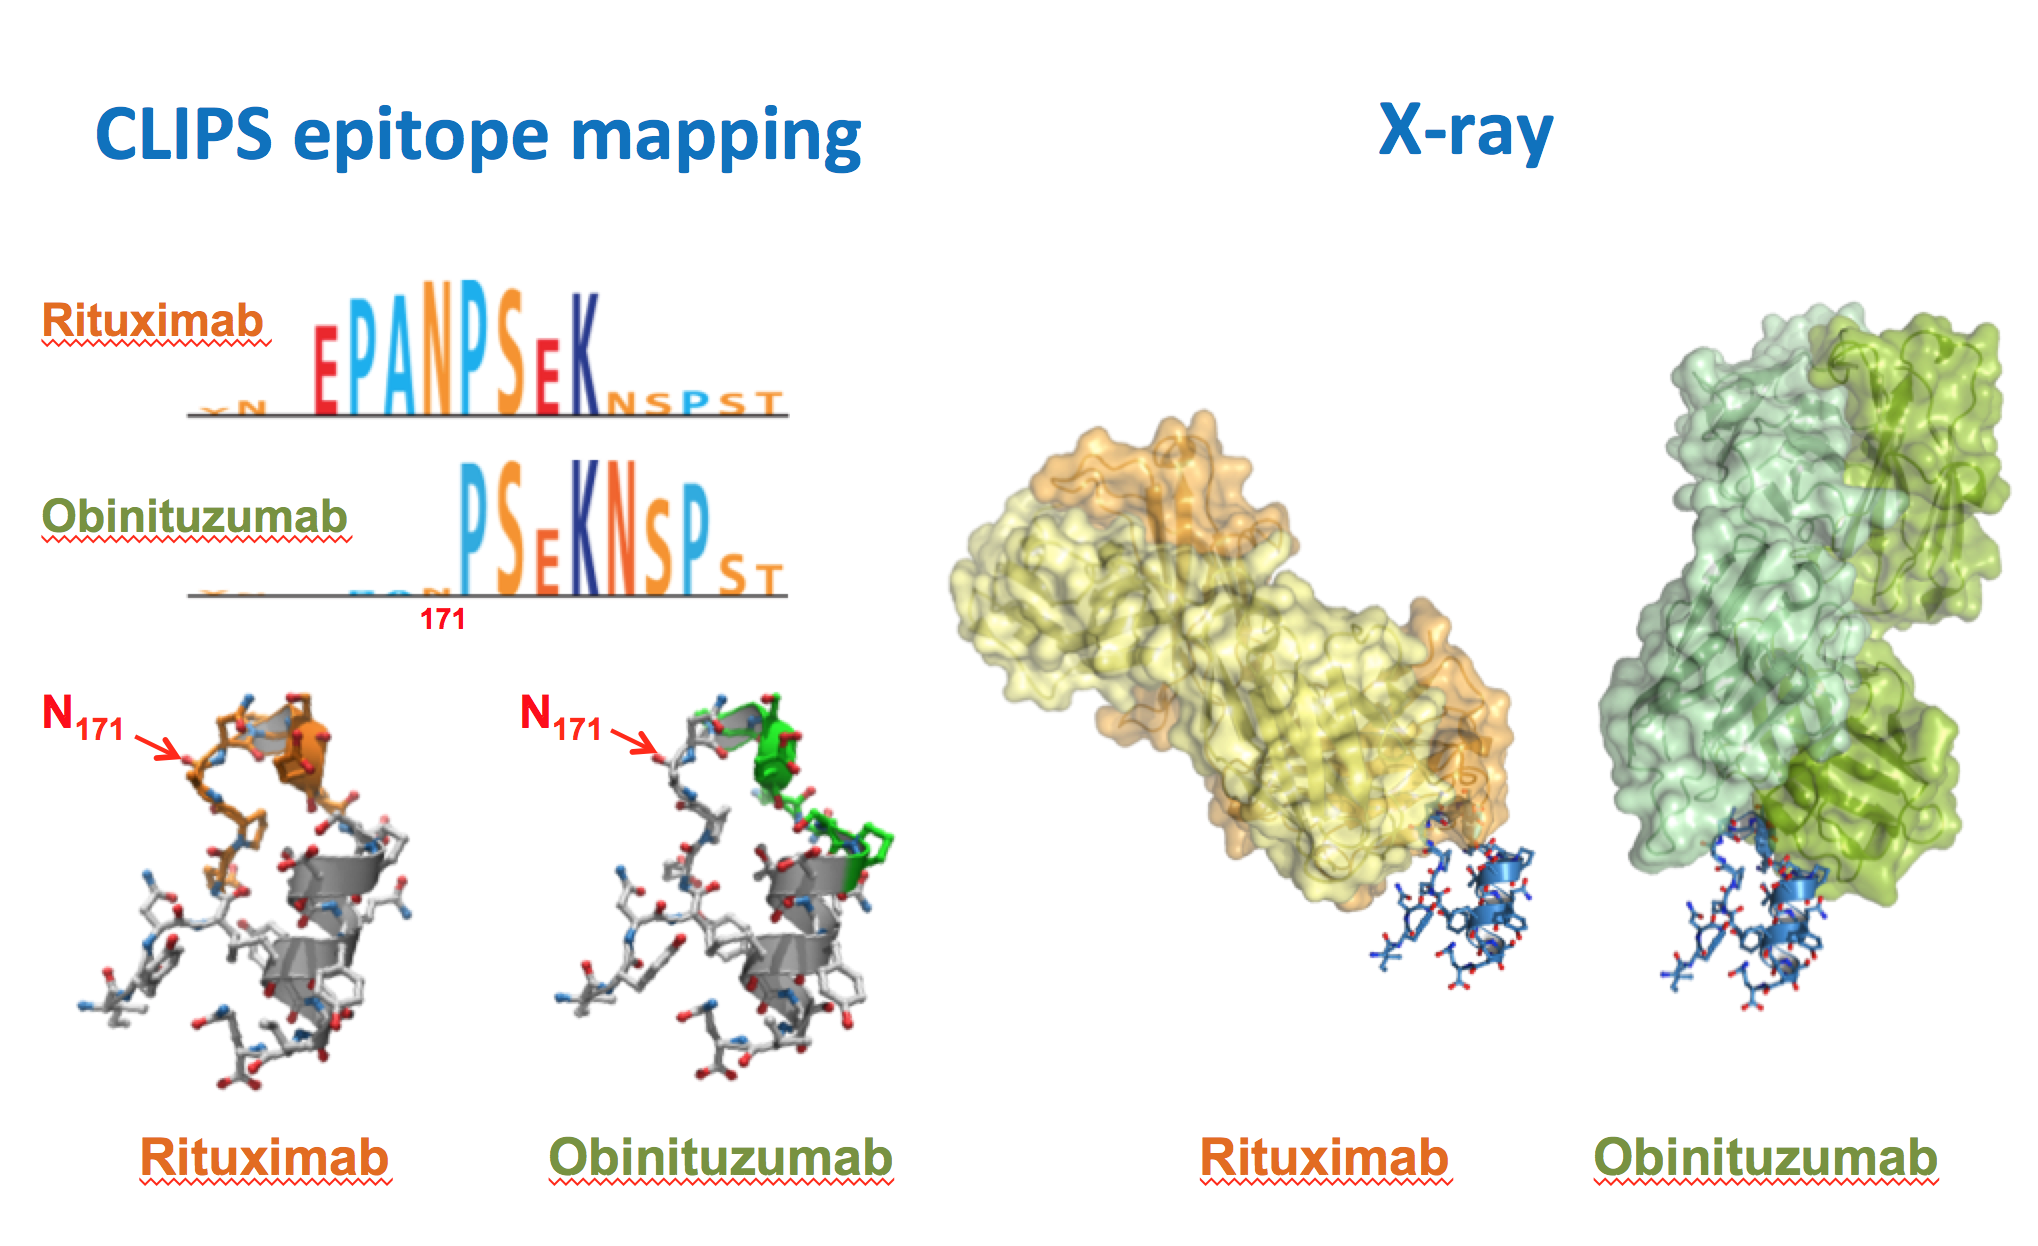 Comparative epitope mapping of Rituximab and Obinutuzmab